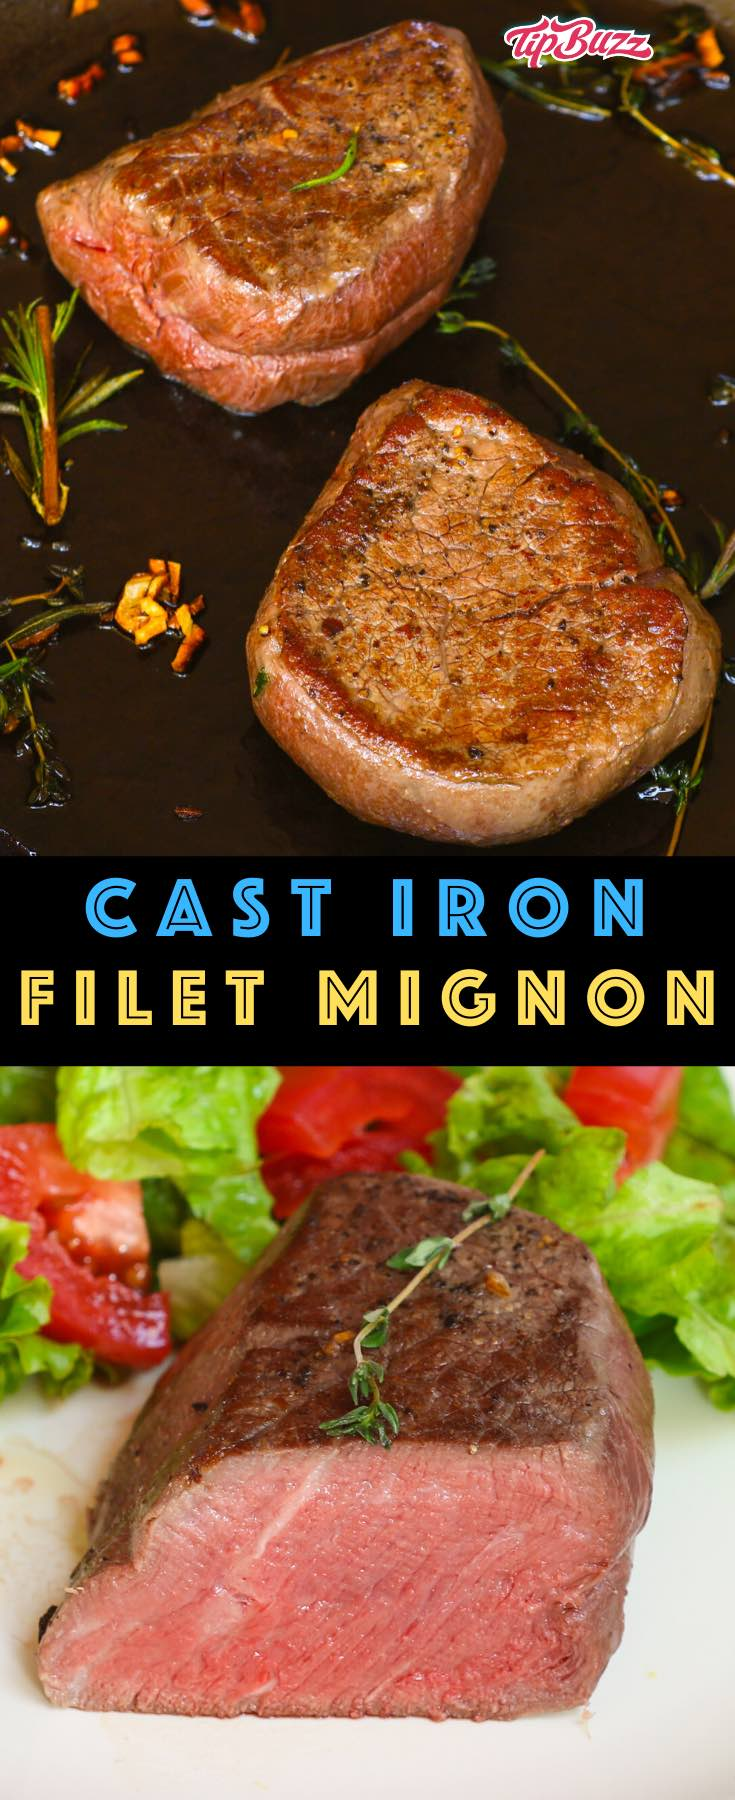 Filet Mignon in a Cast Iron Skillet pan seared with an oven finish - so tender it melts in your mouth with delicate flavors. The perfect fancy dinner for two and perfect for birthdays, date nights, Valentine's and more! #filetmignon